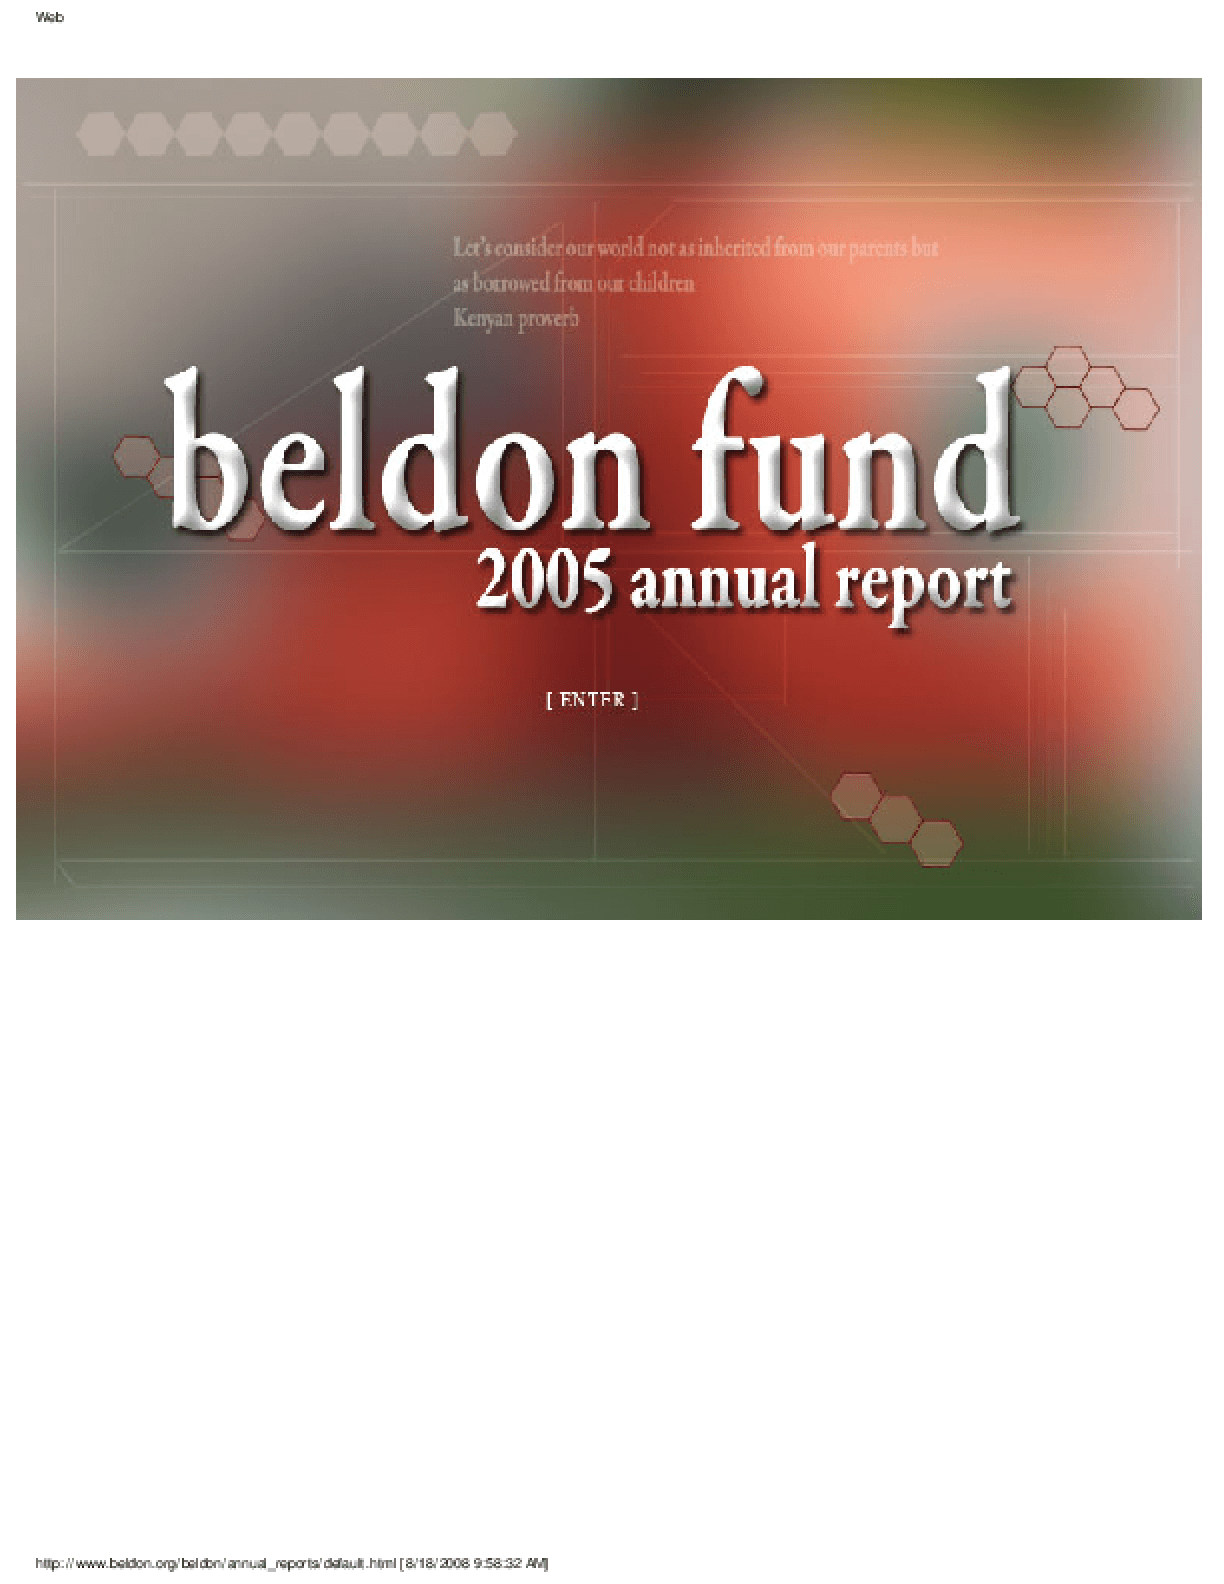 Beldon Fund - 2005 Annual Report